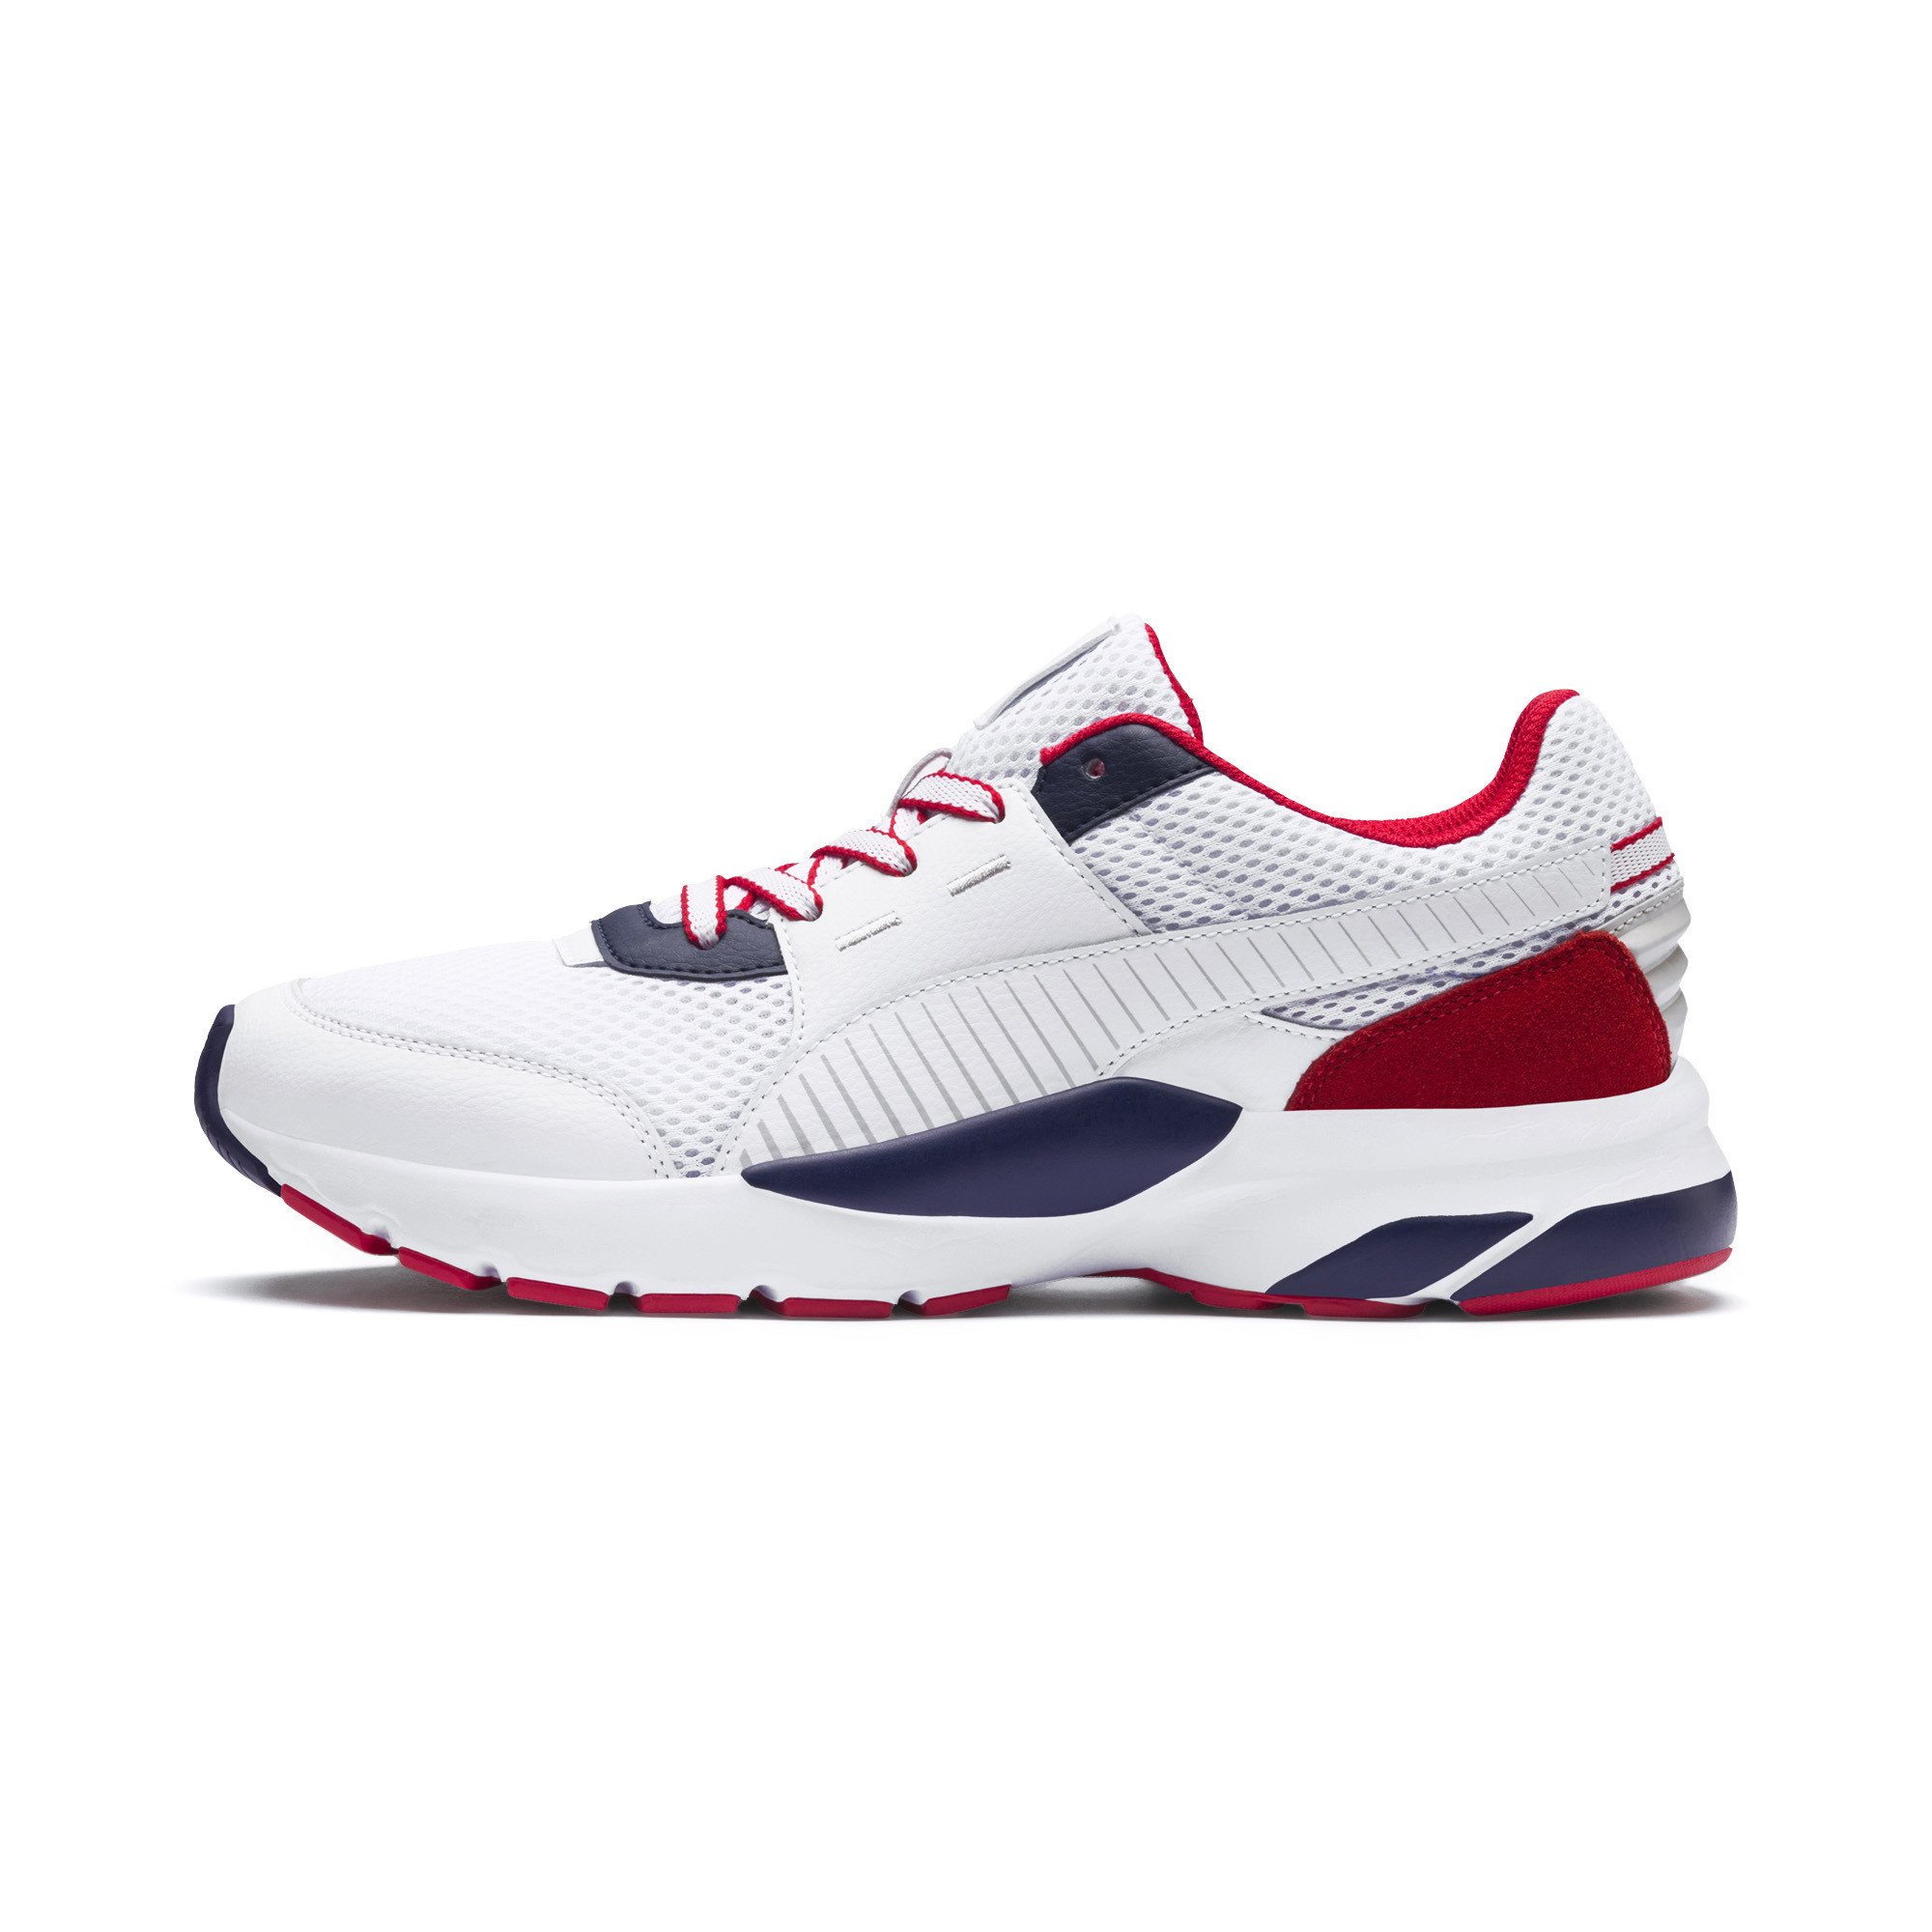 PUMA-Future-Runner-Premium-Men-039-s-Running-Shoes-Men-Shoe-Basics thumbnail 4